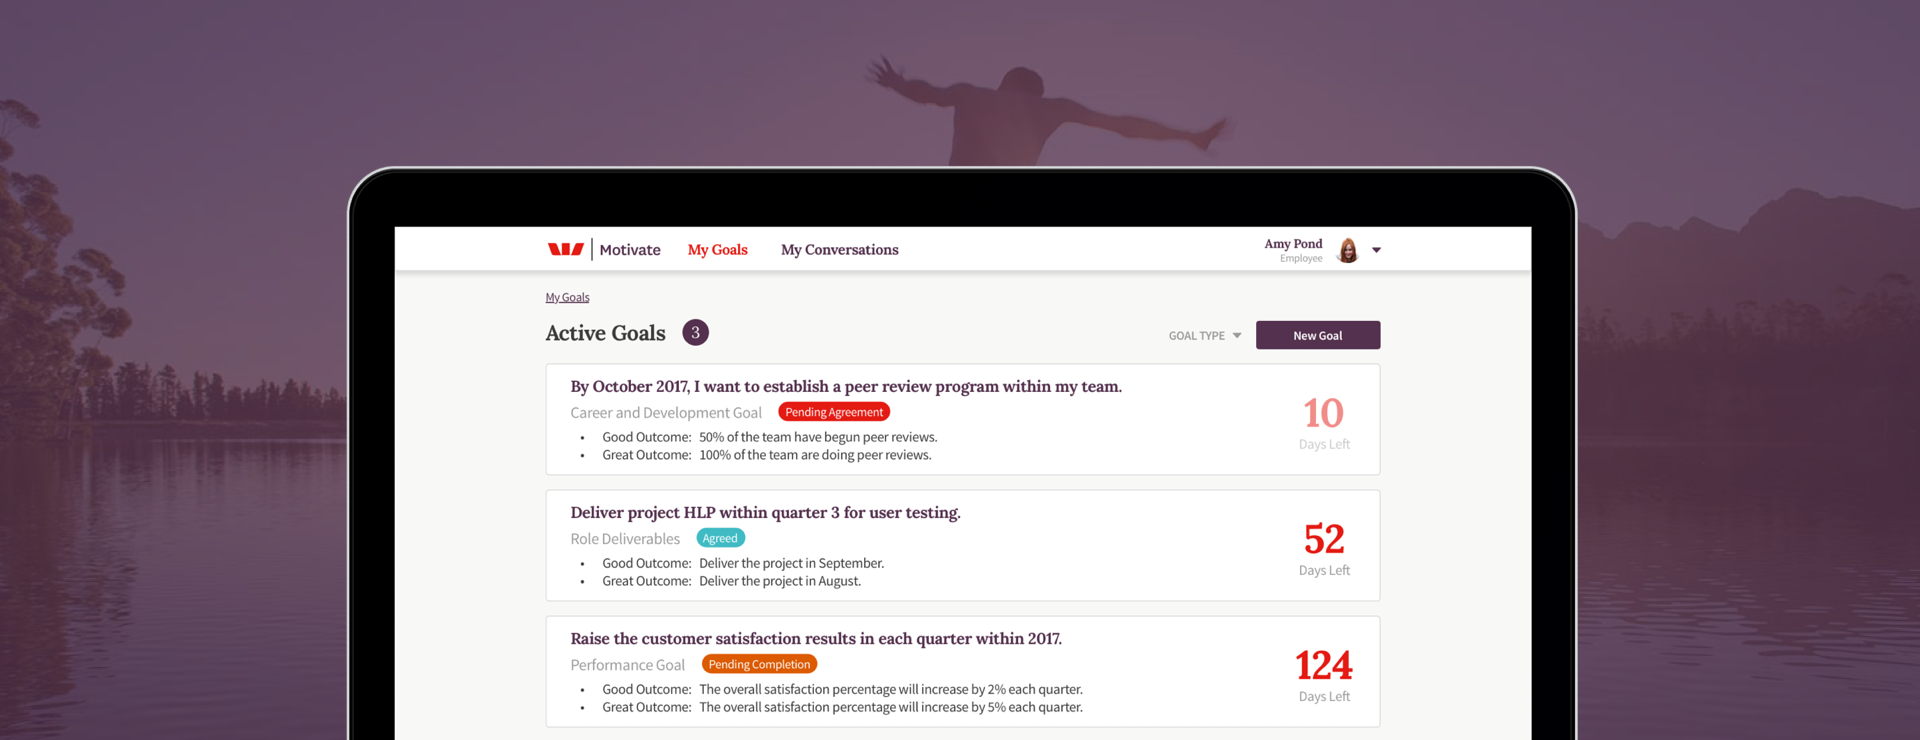 Motivate app opened showing active goals